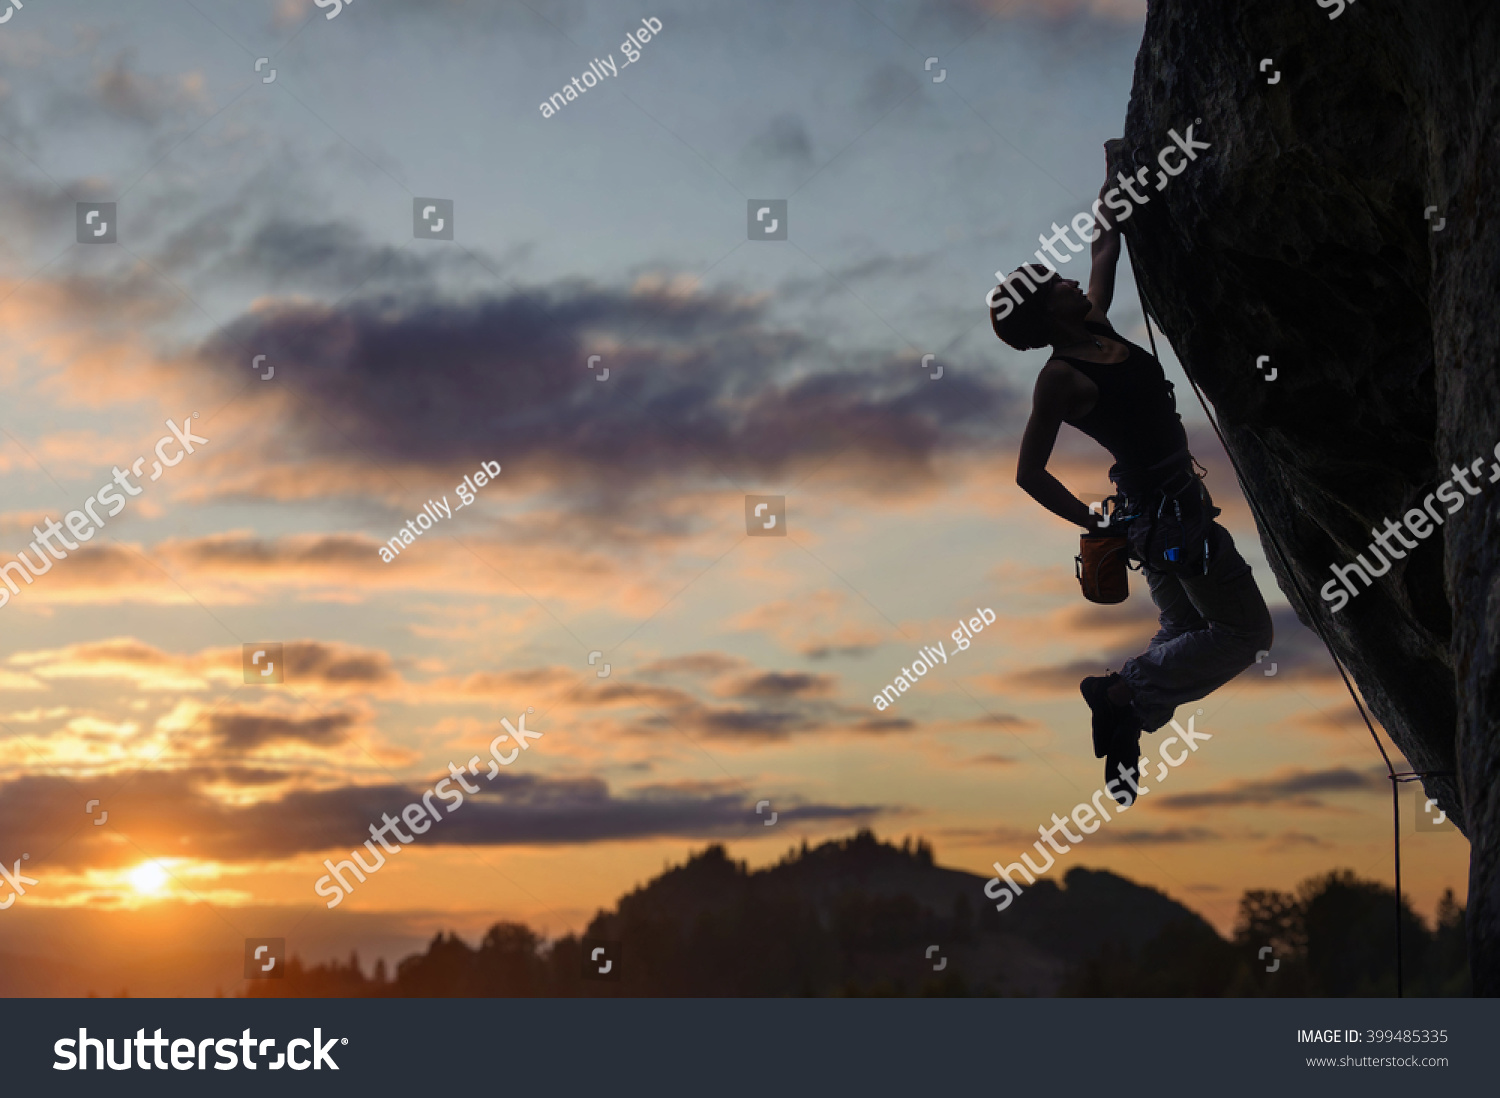 Silhouette of athletic female rock climber climbing steep rock wall against amazing sunset sky in the mountains Girl is hanging on one hand and holding hand in magnesium bag